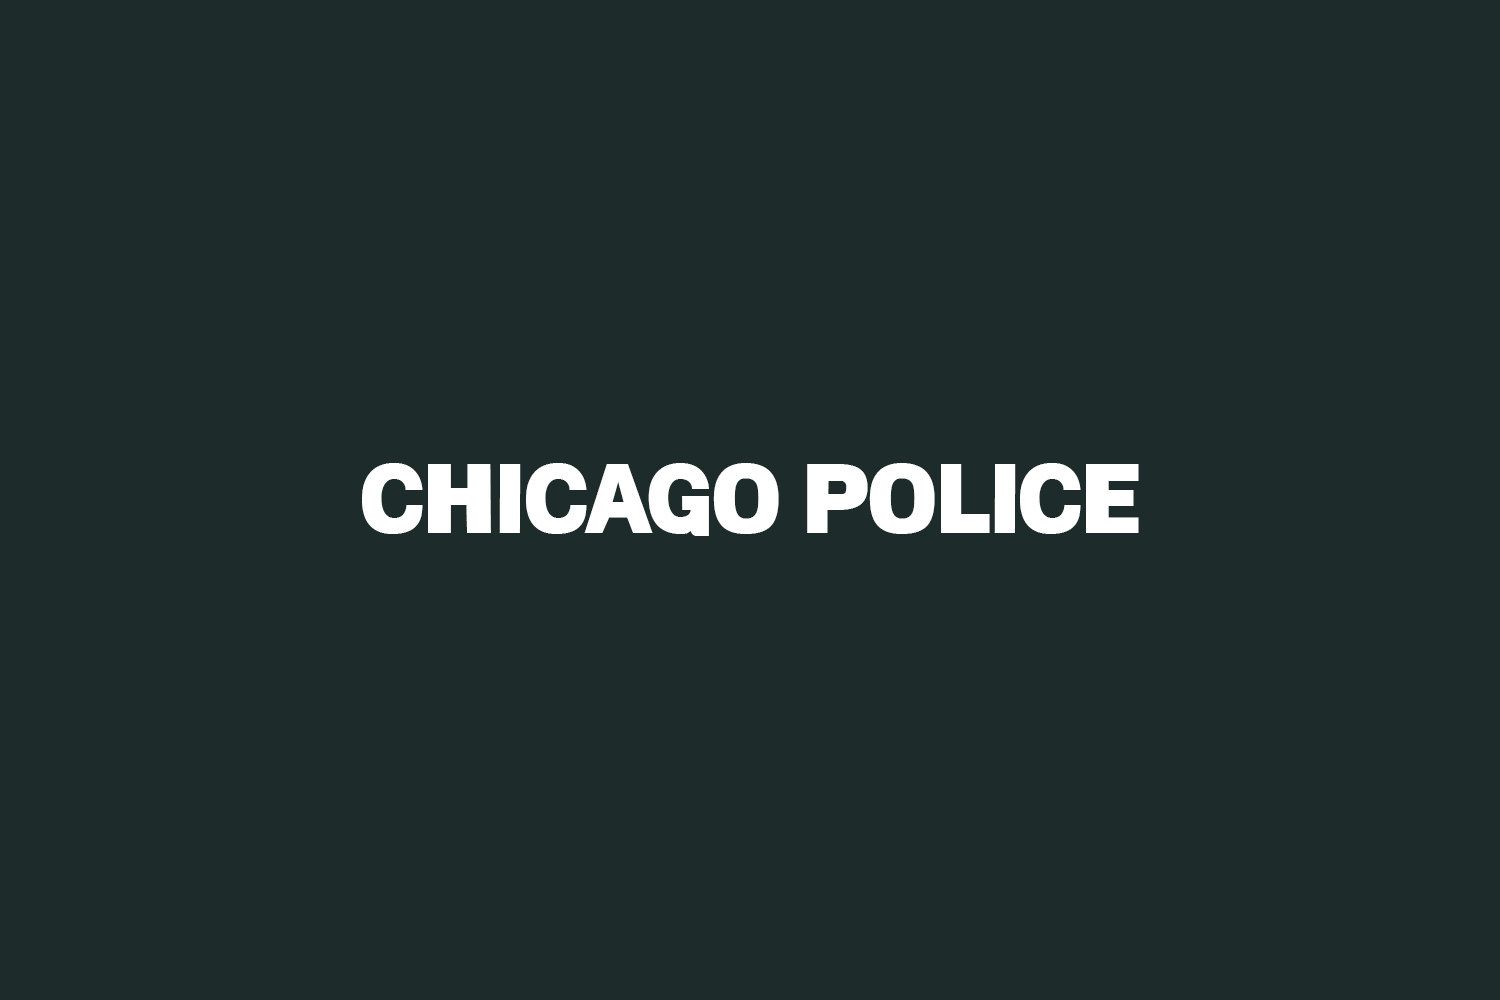 Chicago Police Free Font